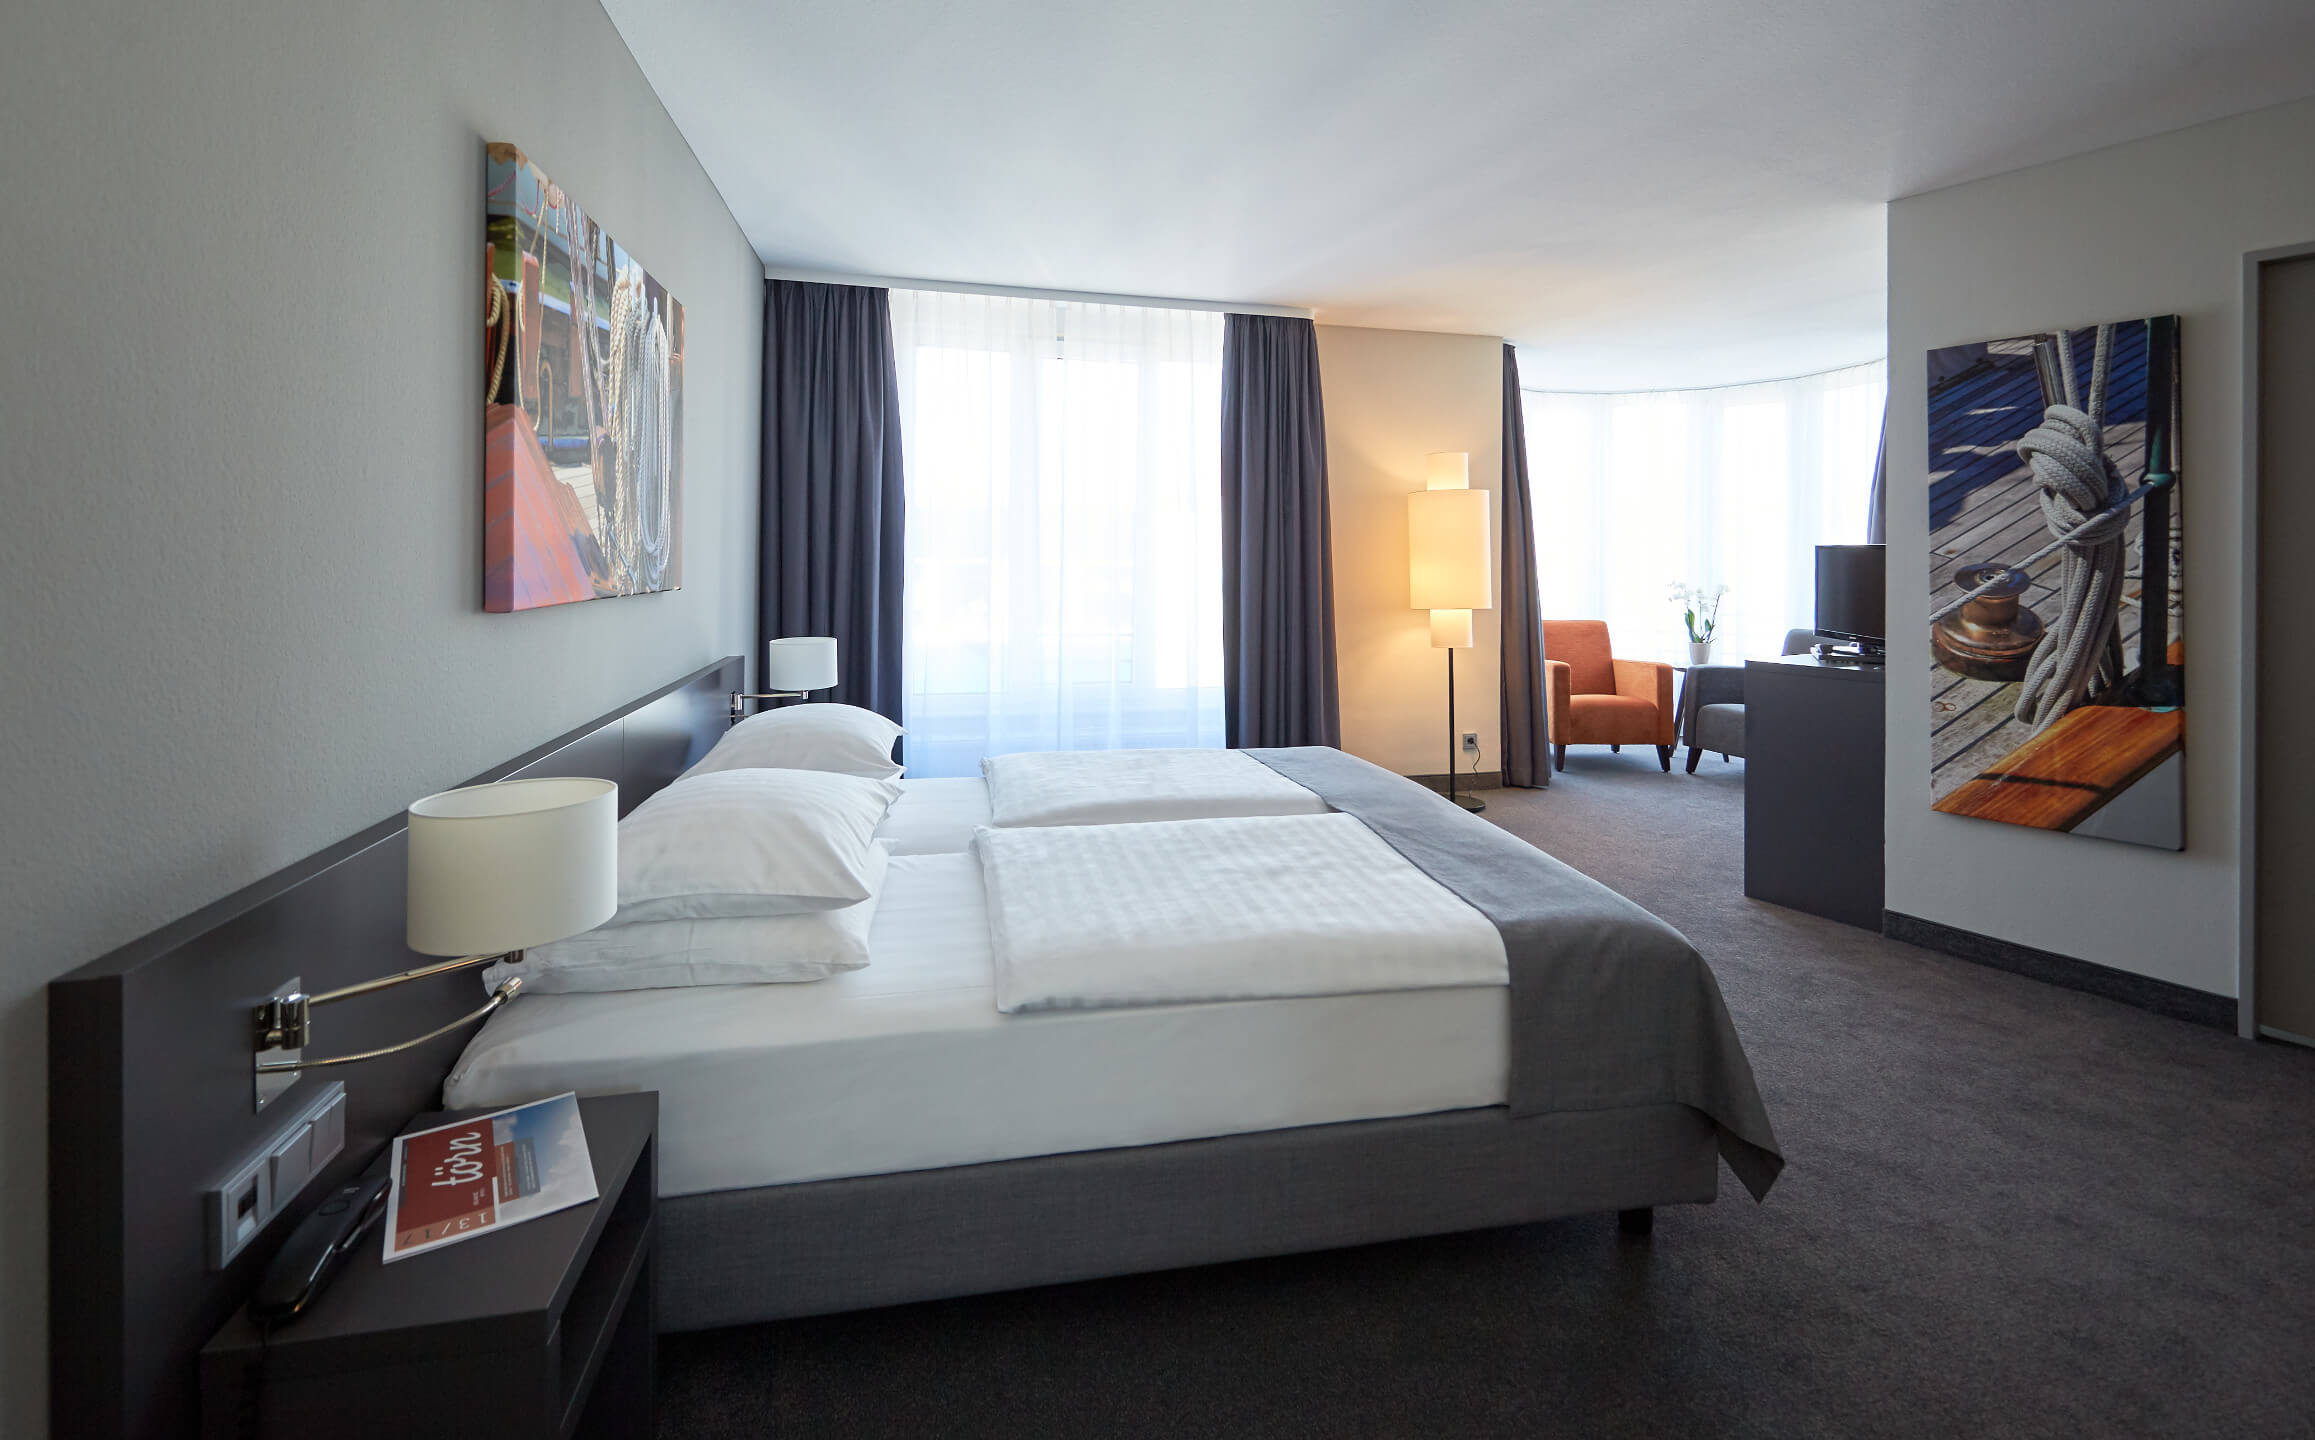 Interior view of the generously furnished Studio in the ATLANTIC Hotel Vegesack in Bremen